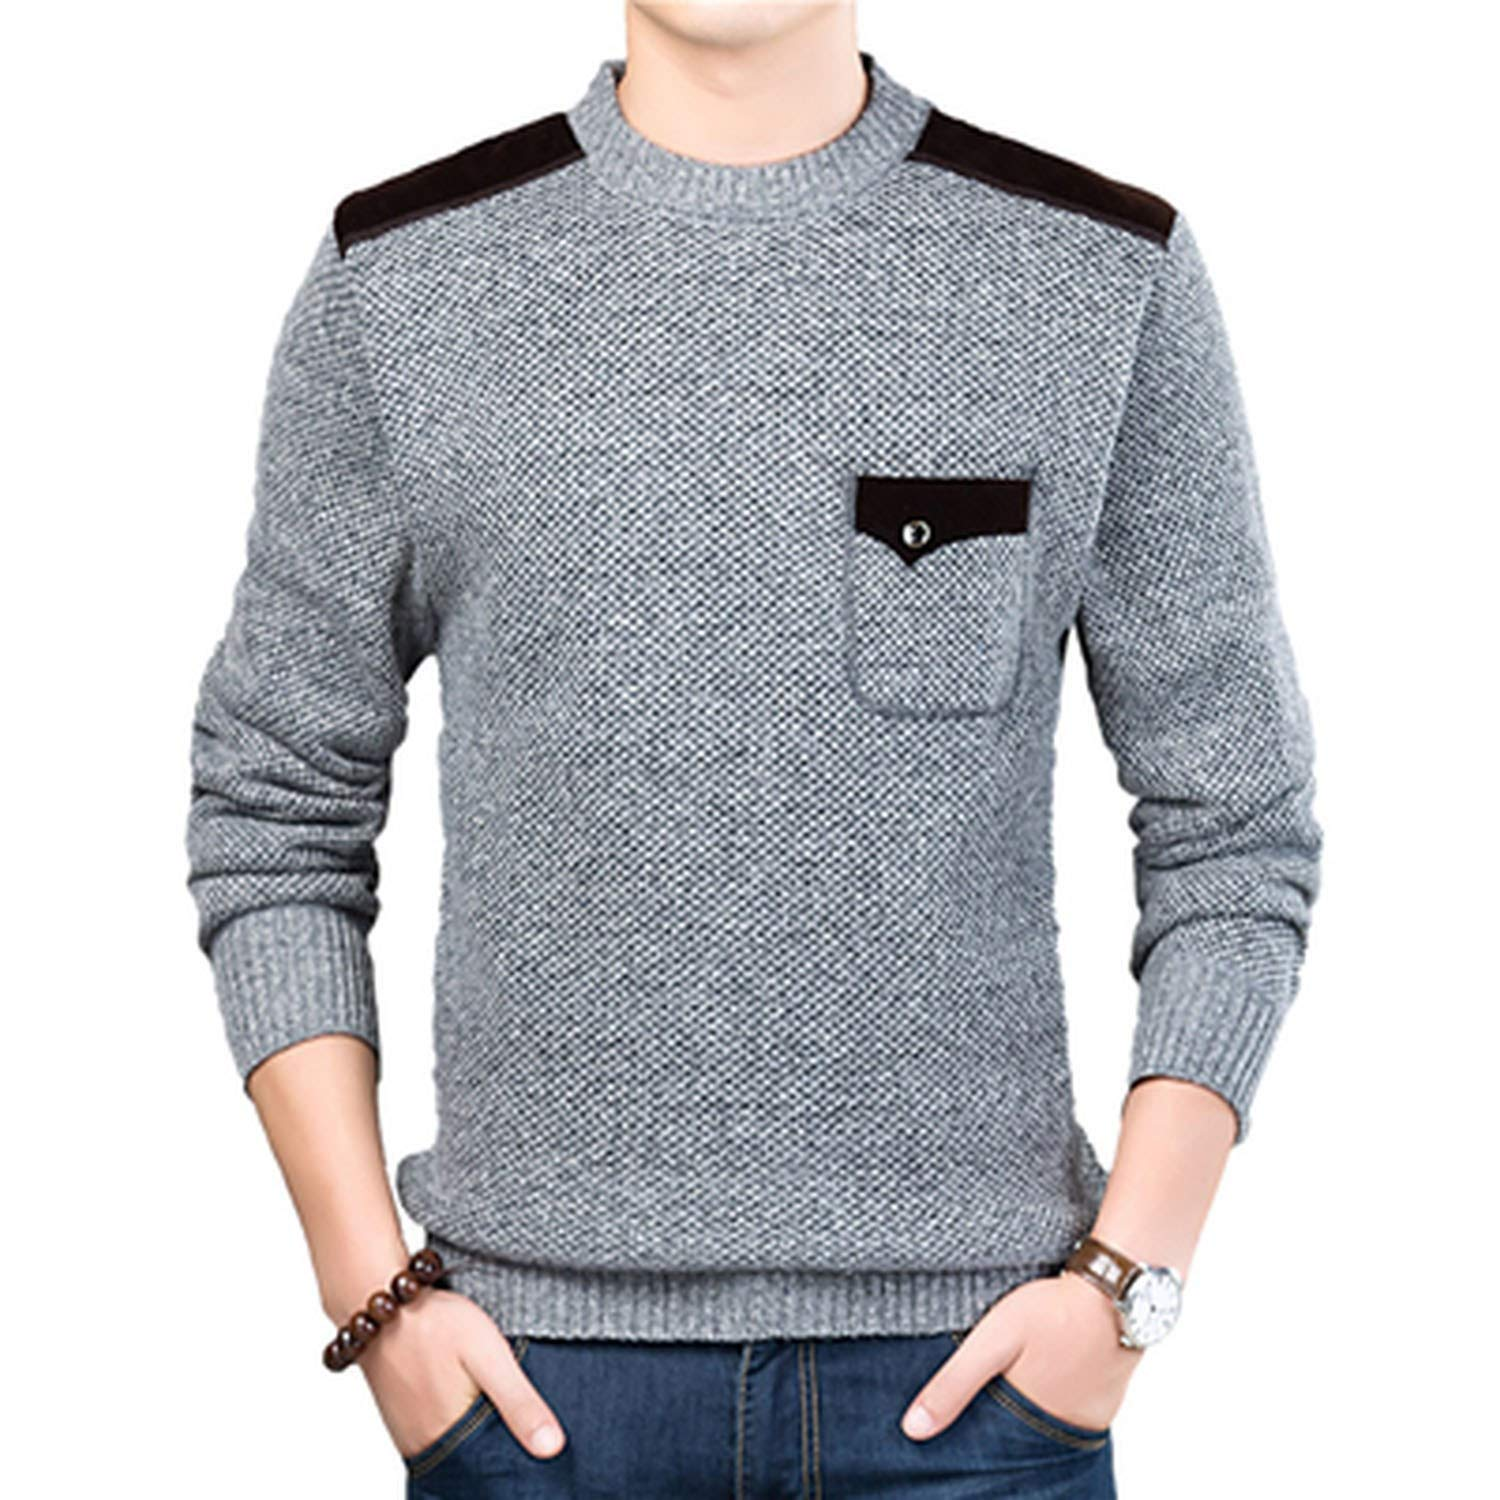 cant be satisfied Autumn Winter Mens Sweater Turtleneck Solid Color Casual Sweater Slim Fit Knitted Pullovers,Light Grey,L